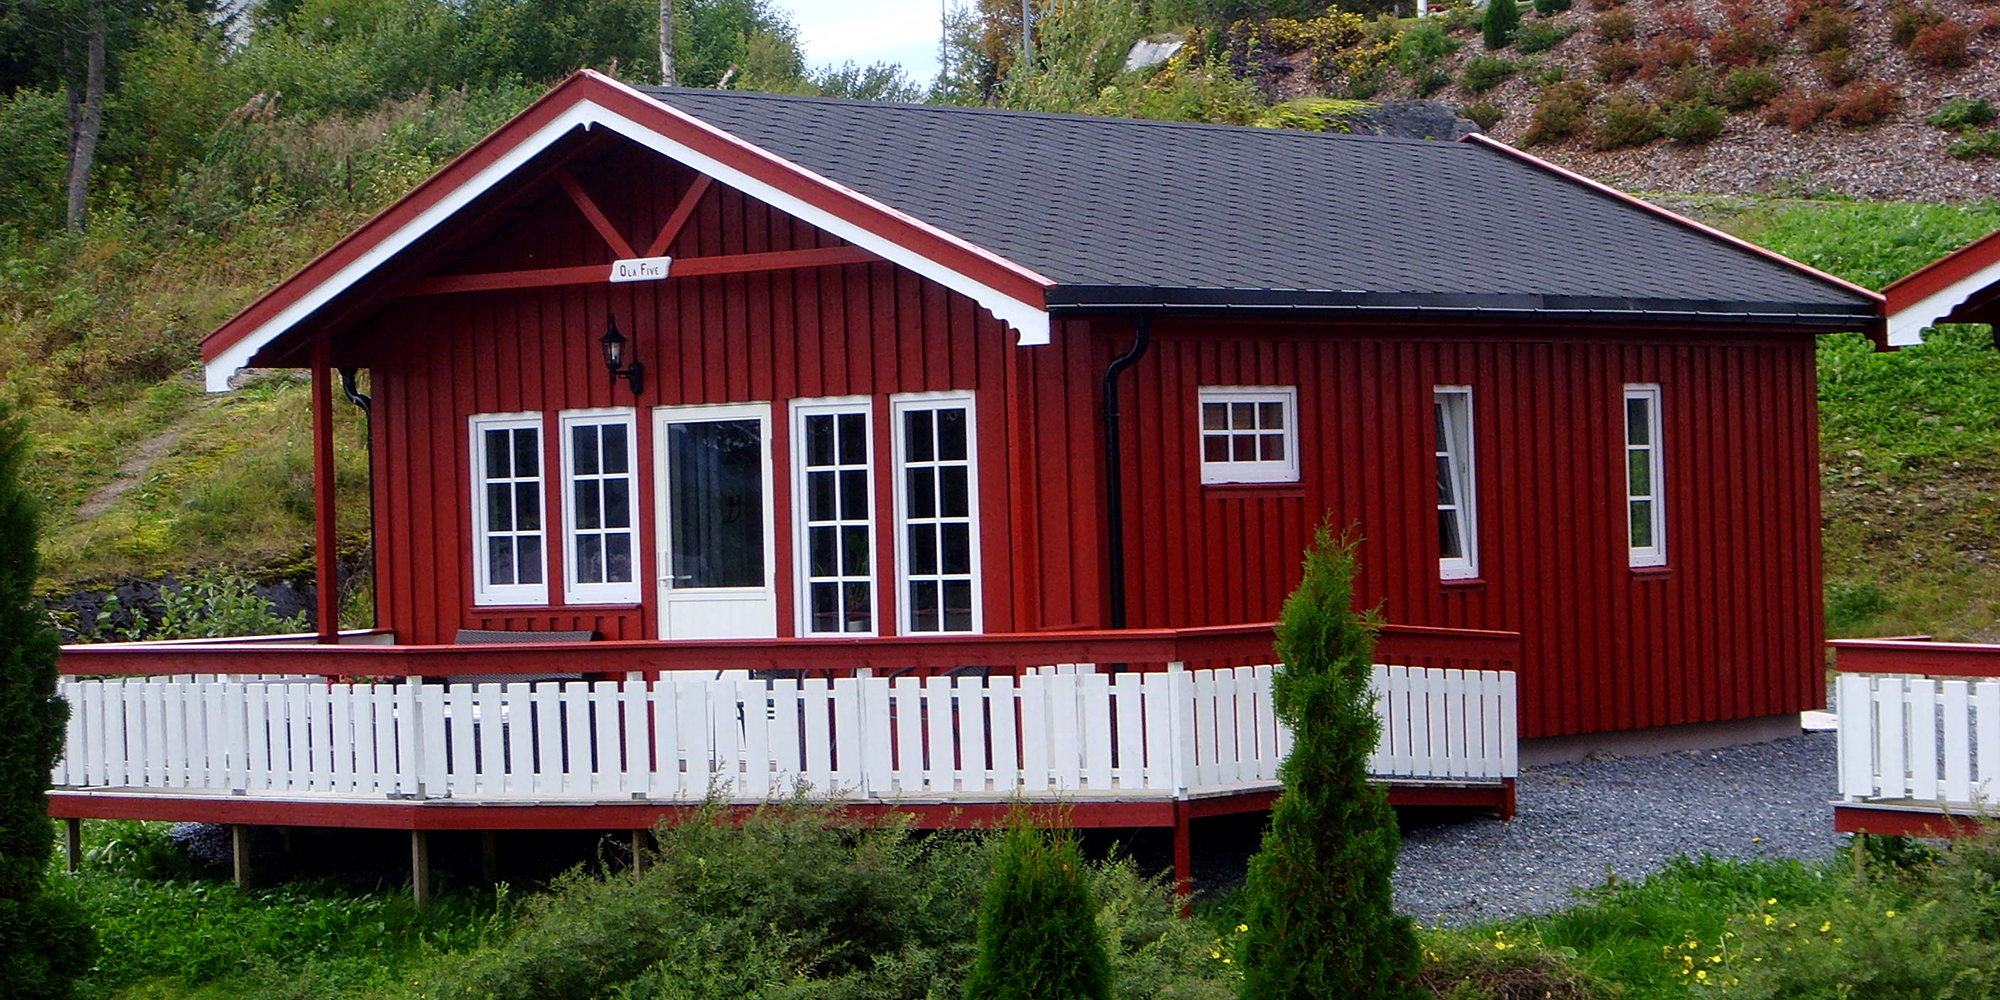 Cabin nr 7 at Føllingstua camping. Copyright: Føllingstua